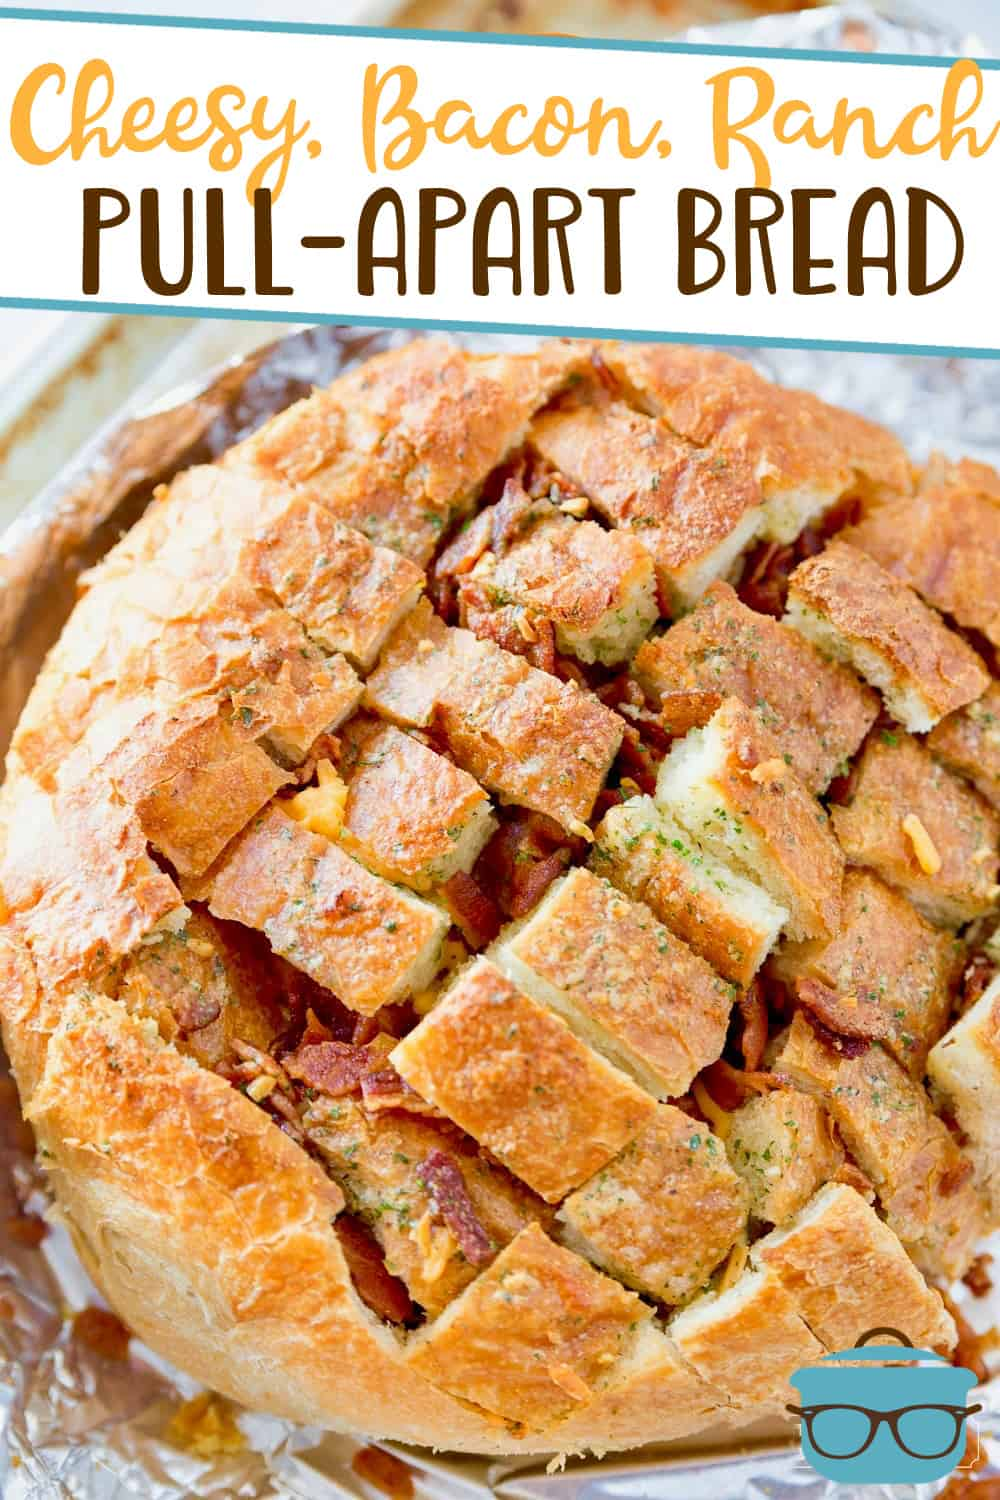 Cheesy Bacon Ranch Pull-Apart Bread is filled with melted cheese, bacon and ranch seasoning. This is everyone's favorite snack!